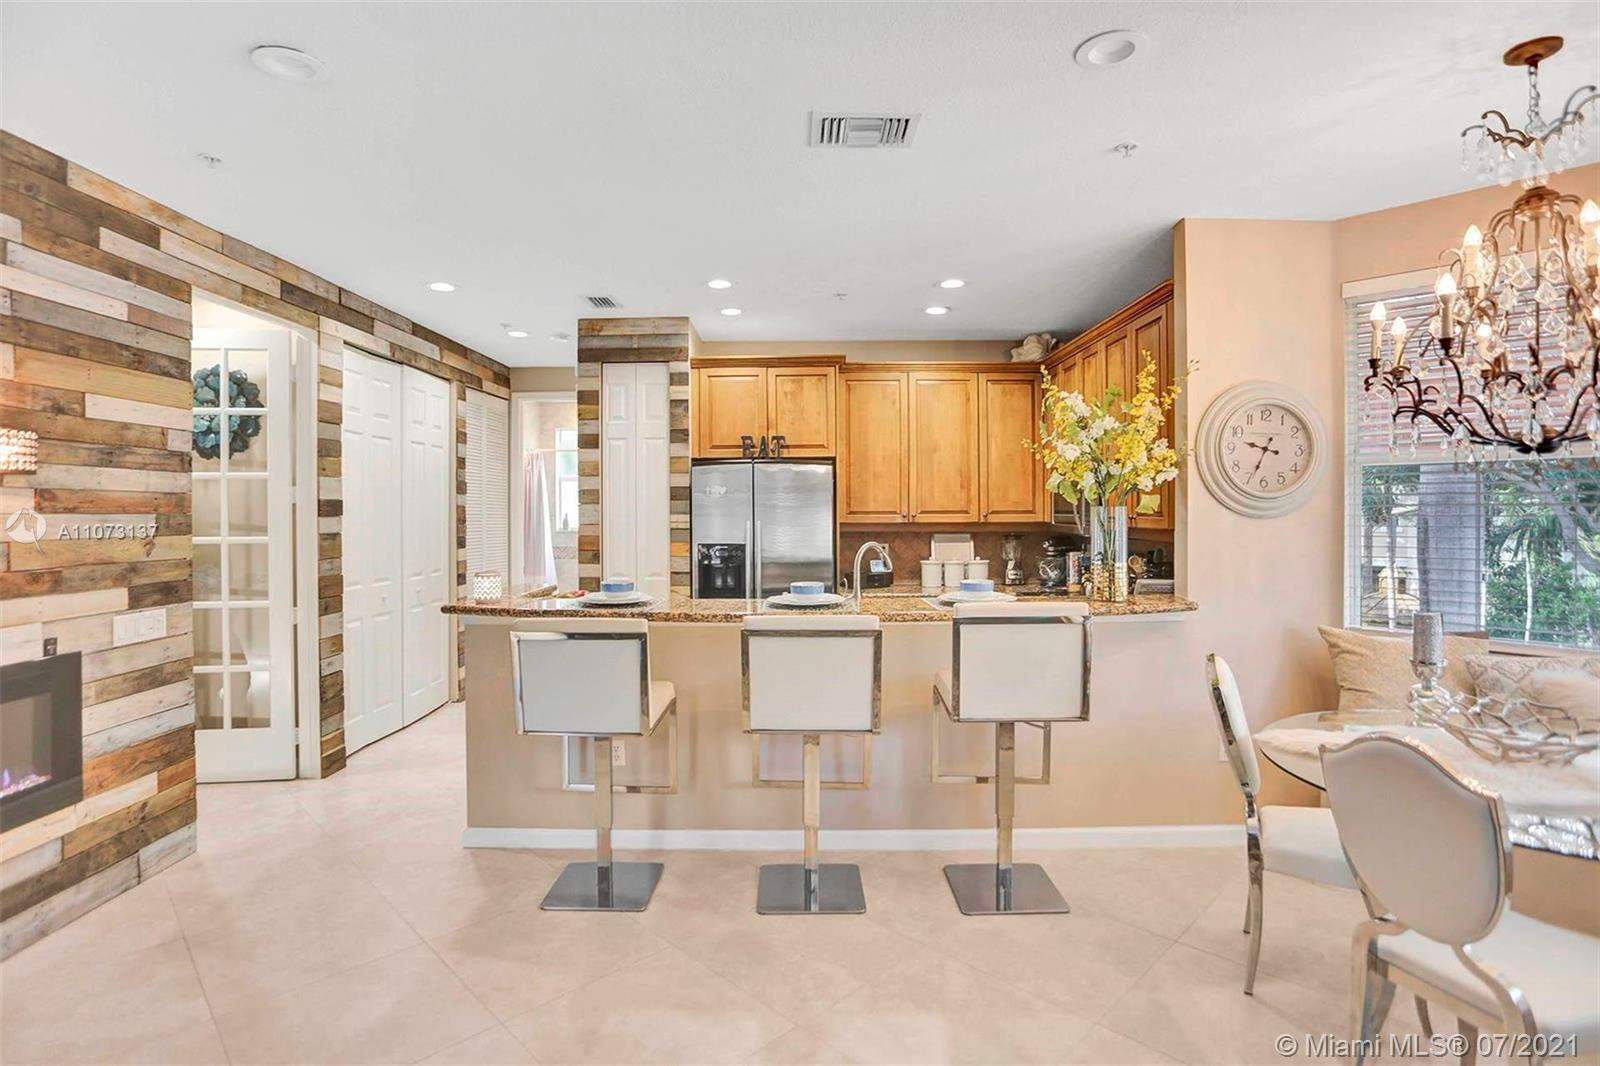 This rare, spacious, and pristine 4/4 townhouse located a prime location within Boynton Beach will n